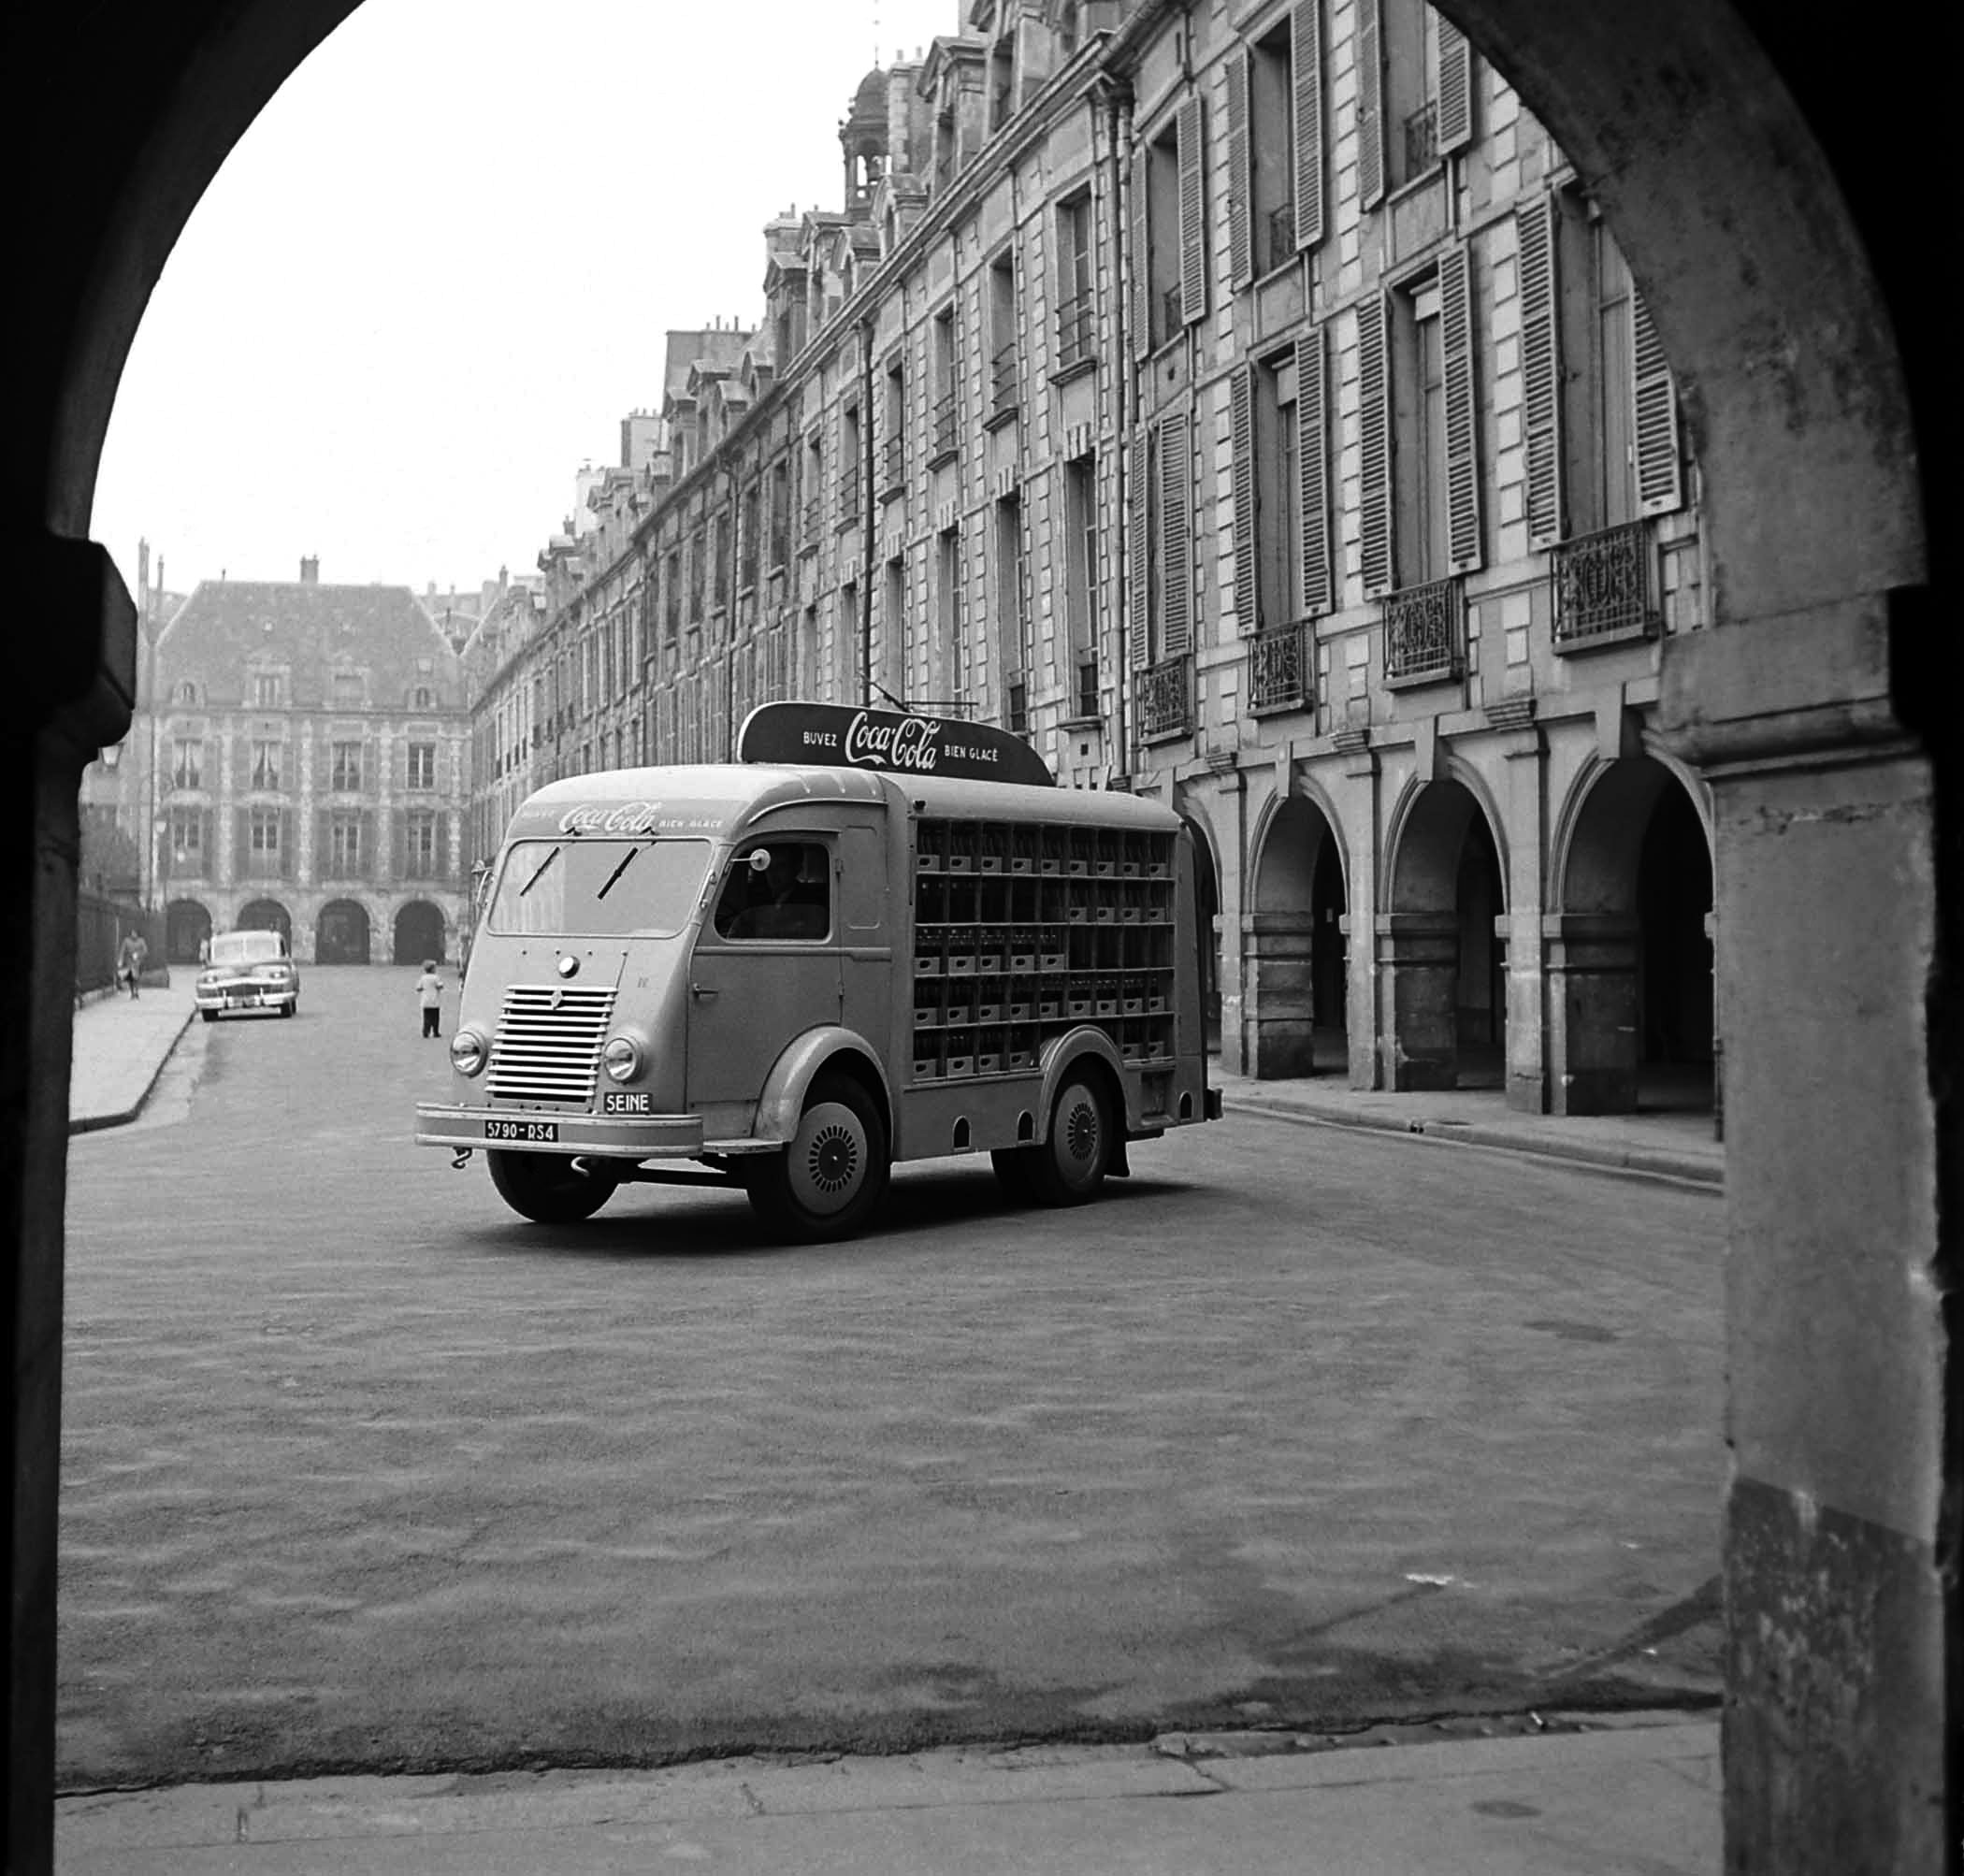 A French Coca-Cola truck pauses on its route in 1950.